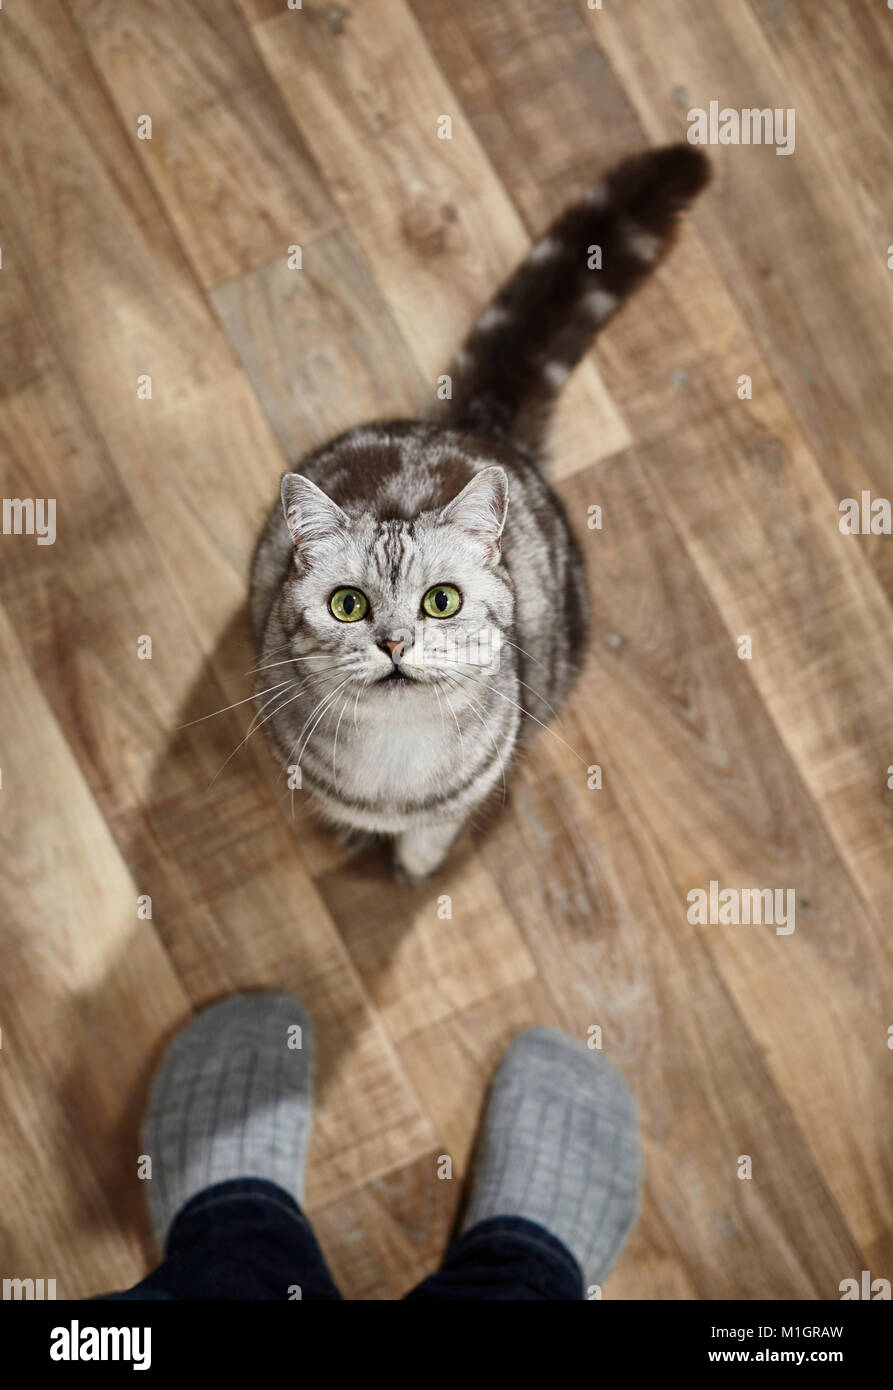 British Shorthair. Gray tabby adult sitting in front of person, seen from above. Germany - Stock Image